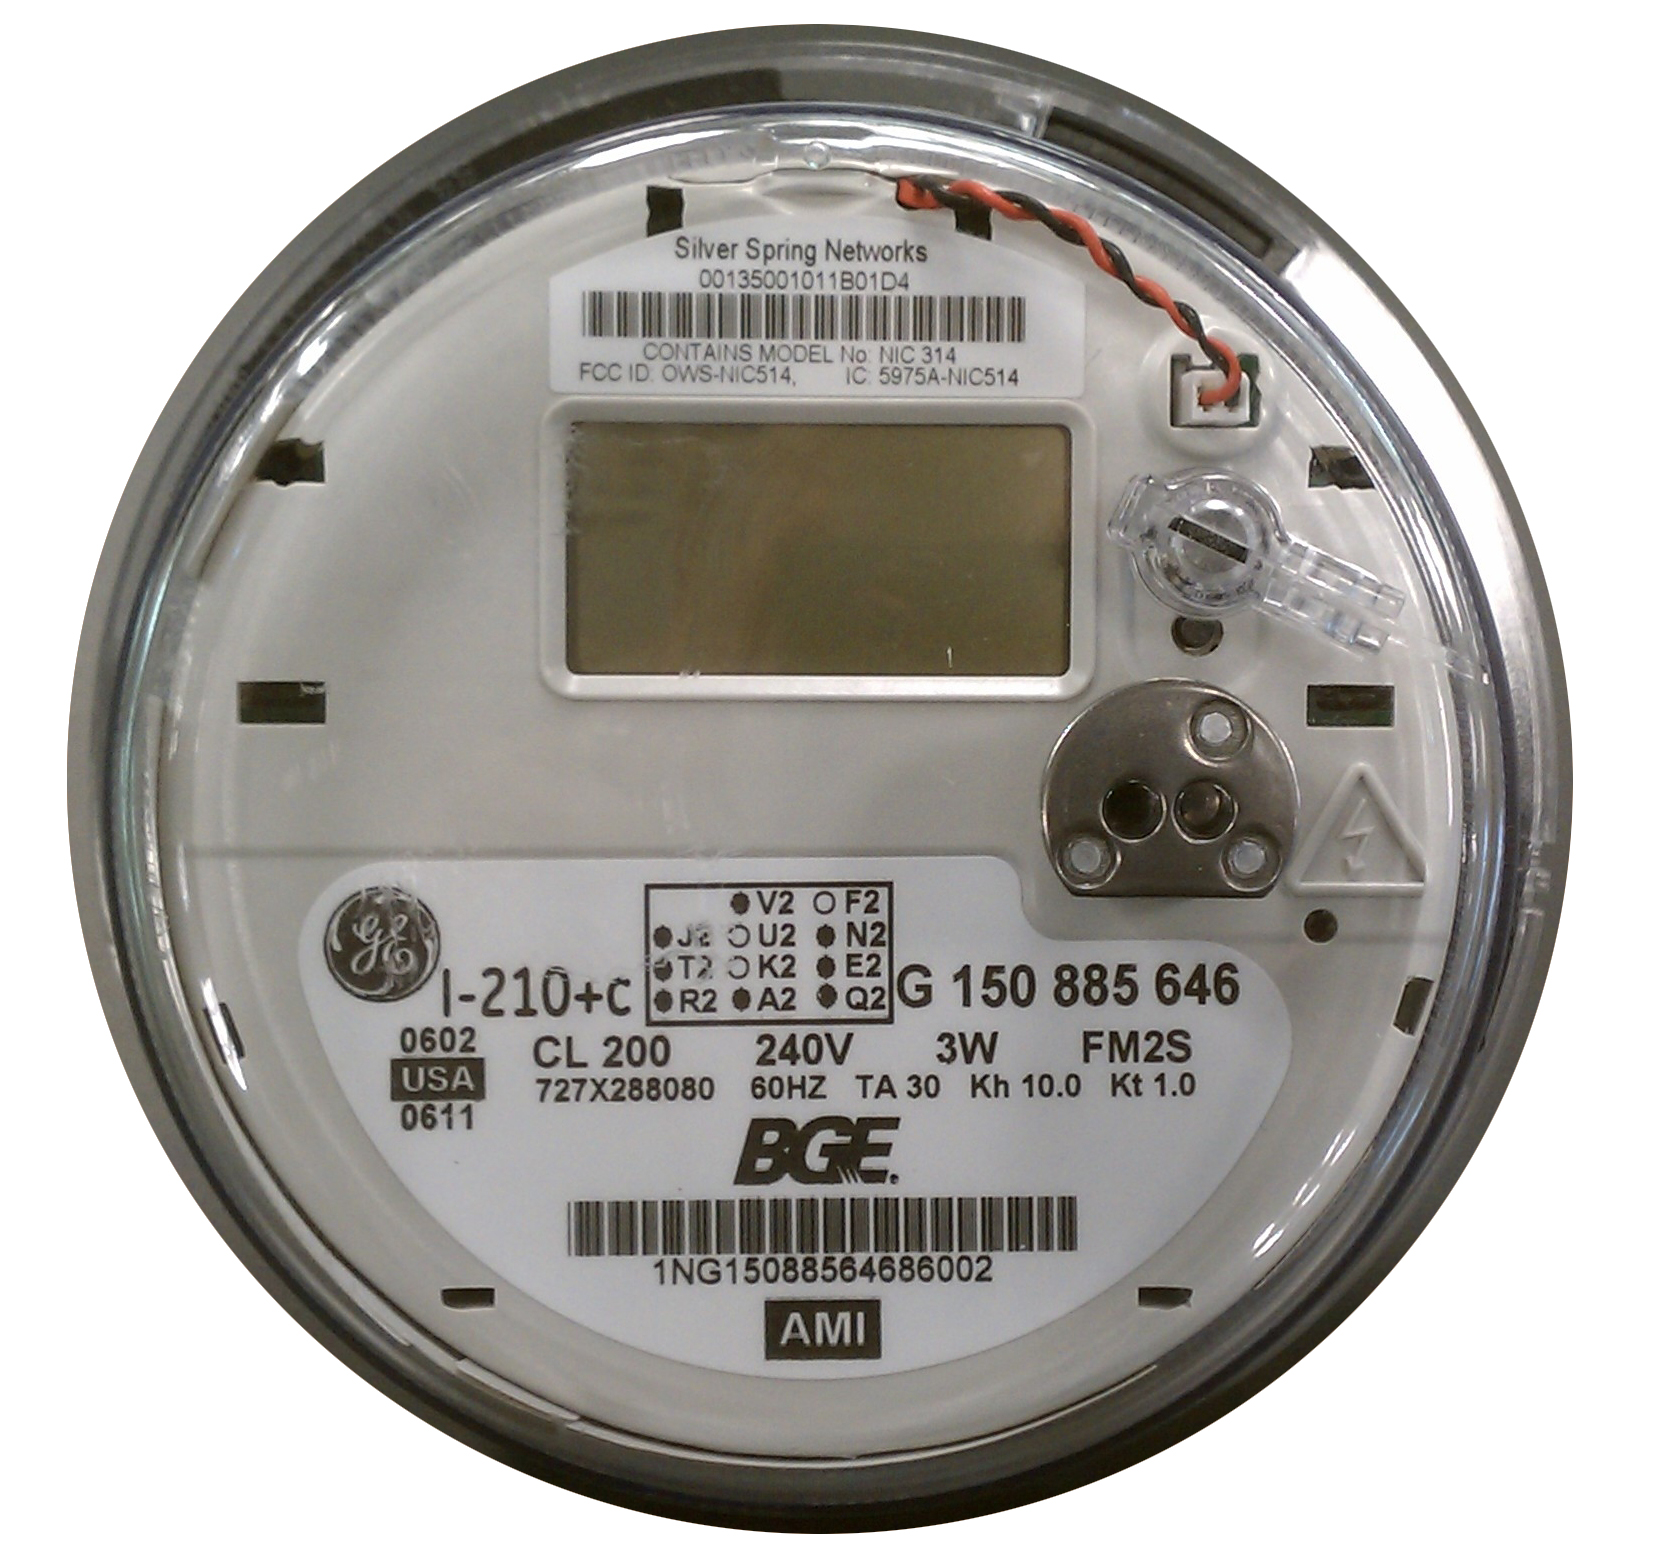 Smart meter by Baltimore Gas and Electric.